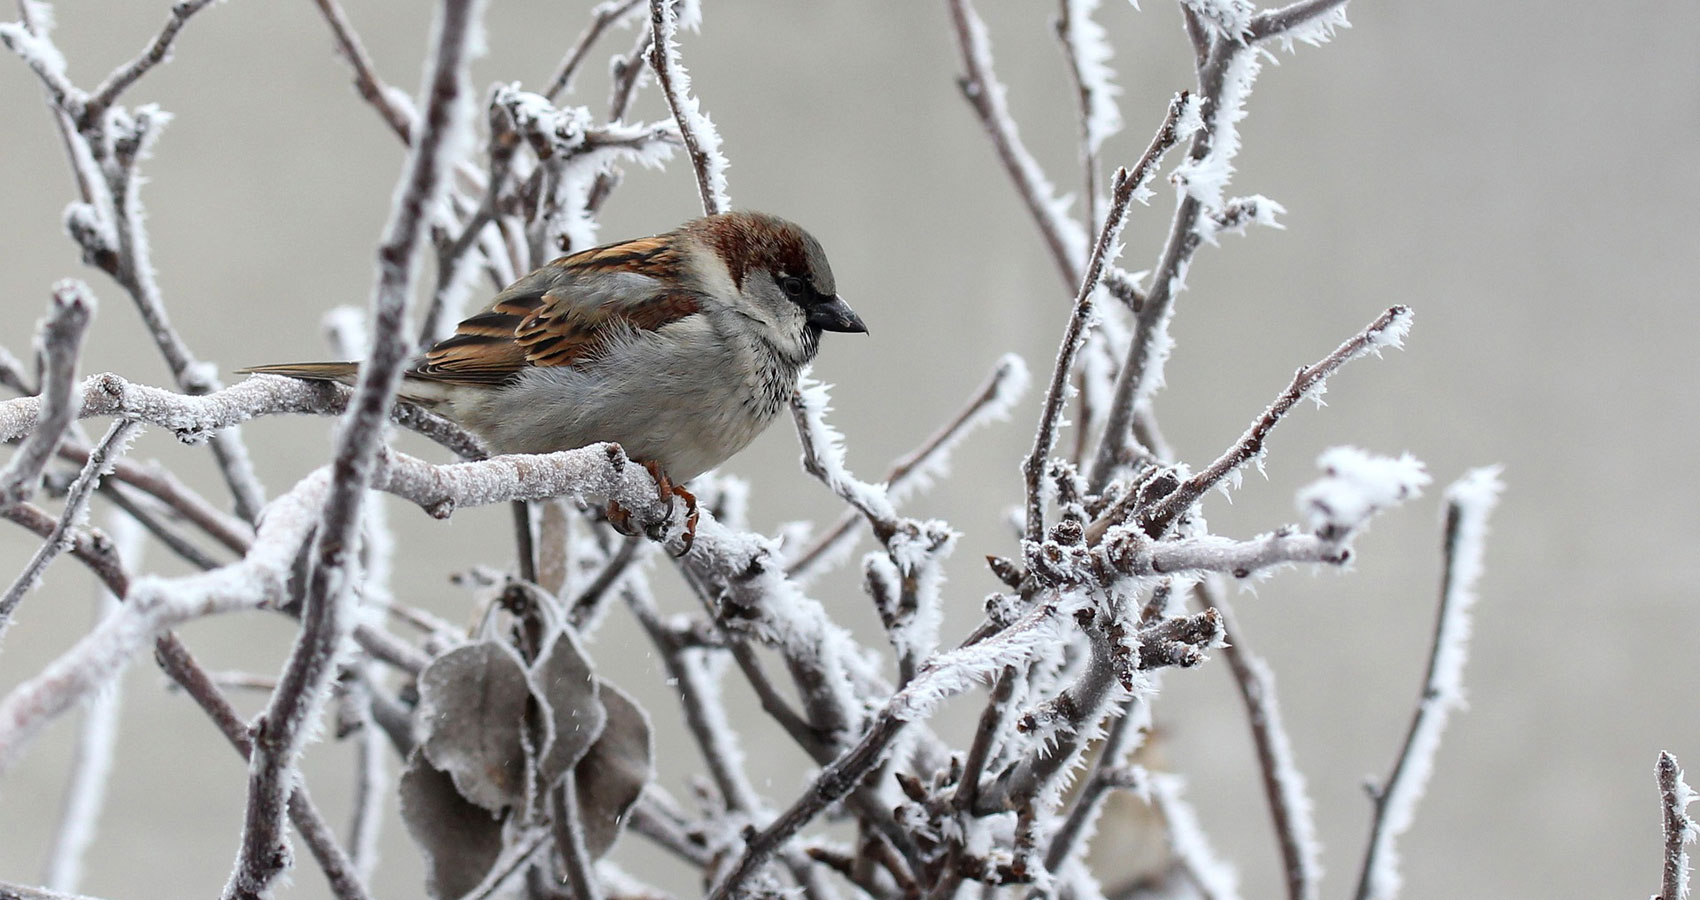 Winter Sparrow, written by Gillian Ferwerda at Spillwords.com